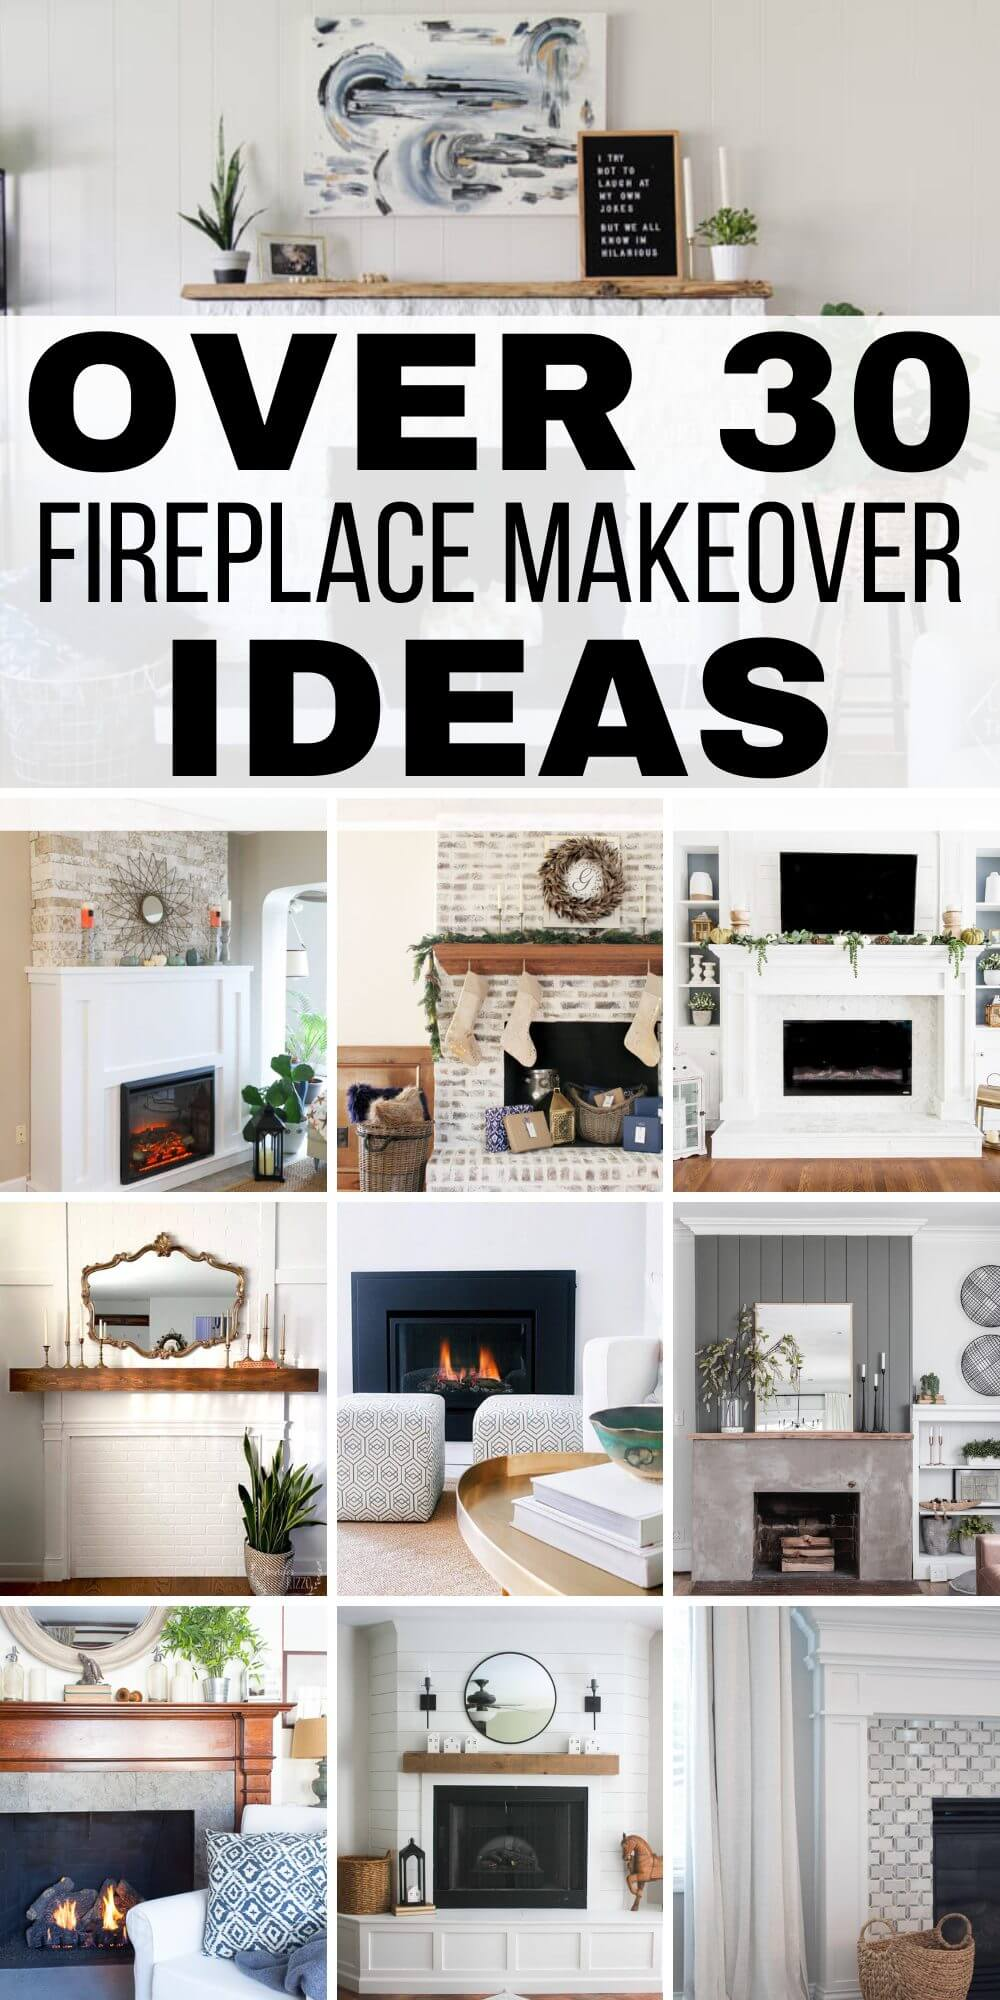 Over 30 Amazing Fireplace Makeover Ideas